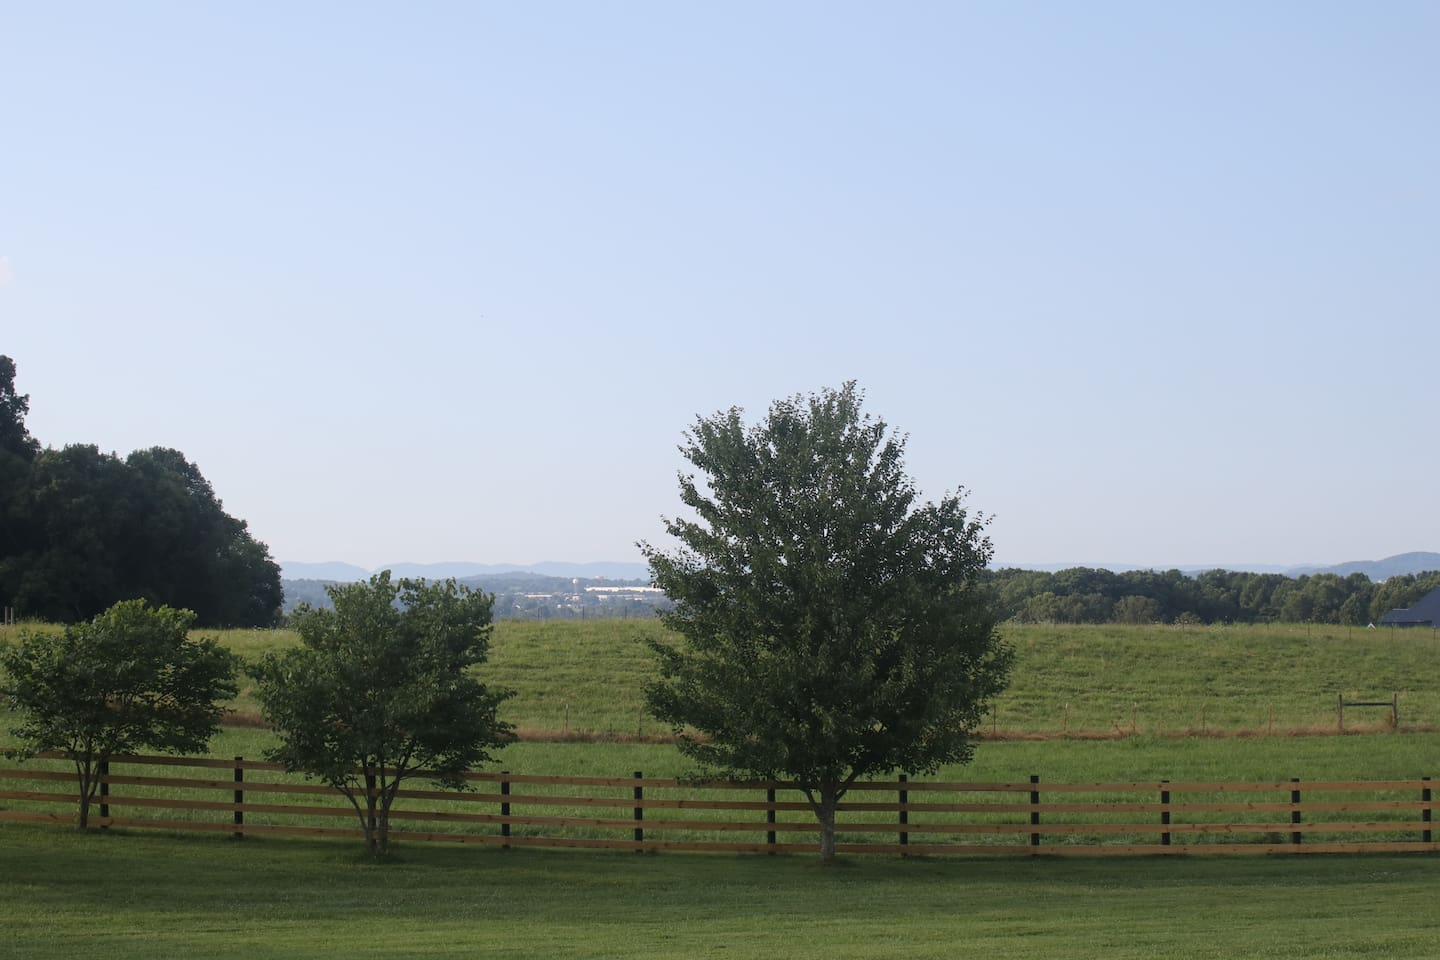 Back porch view of Morristown, TN